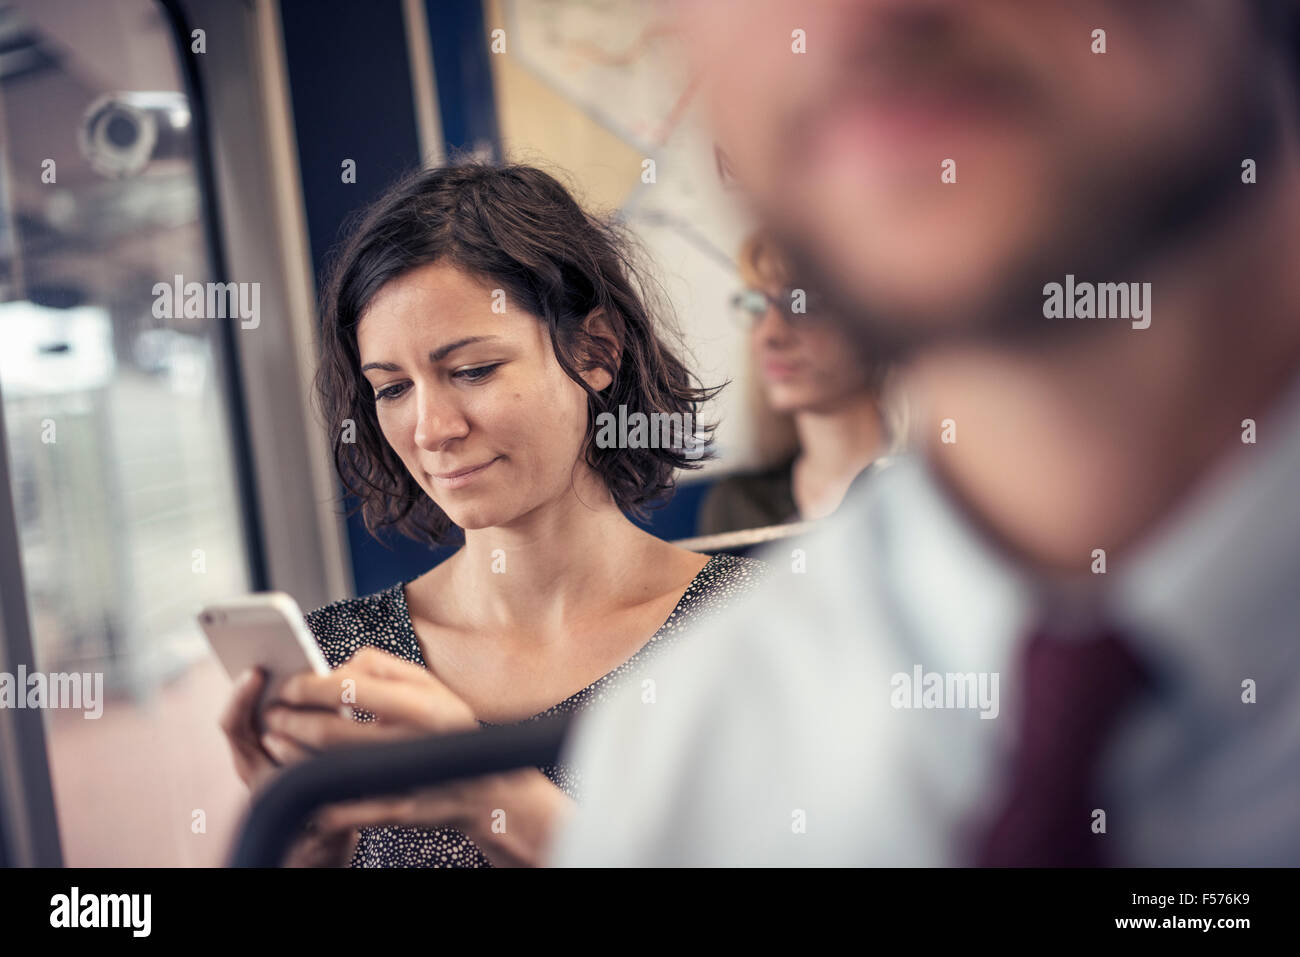 A woman on a bus looking down at her cell phone - Stock Image